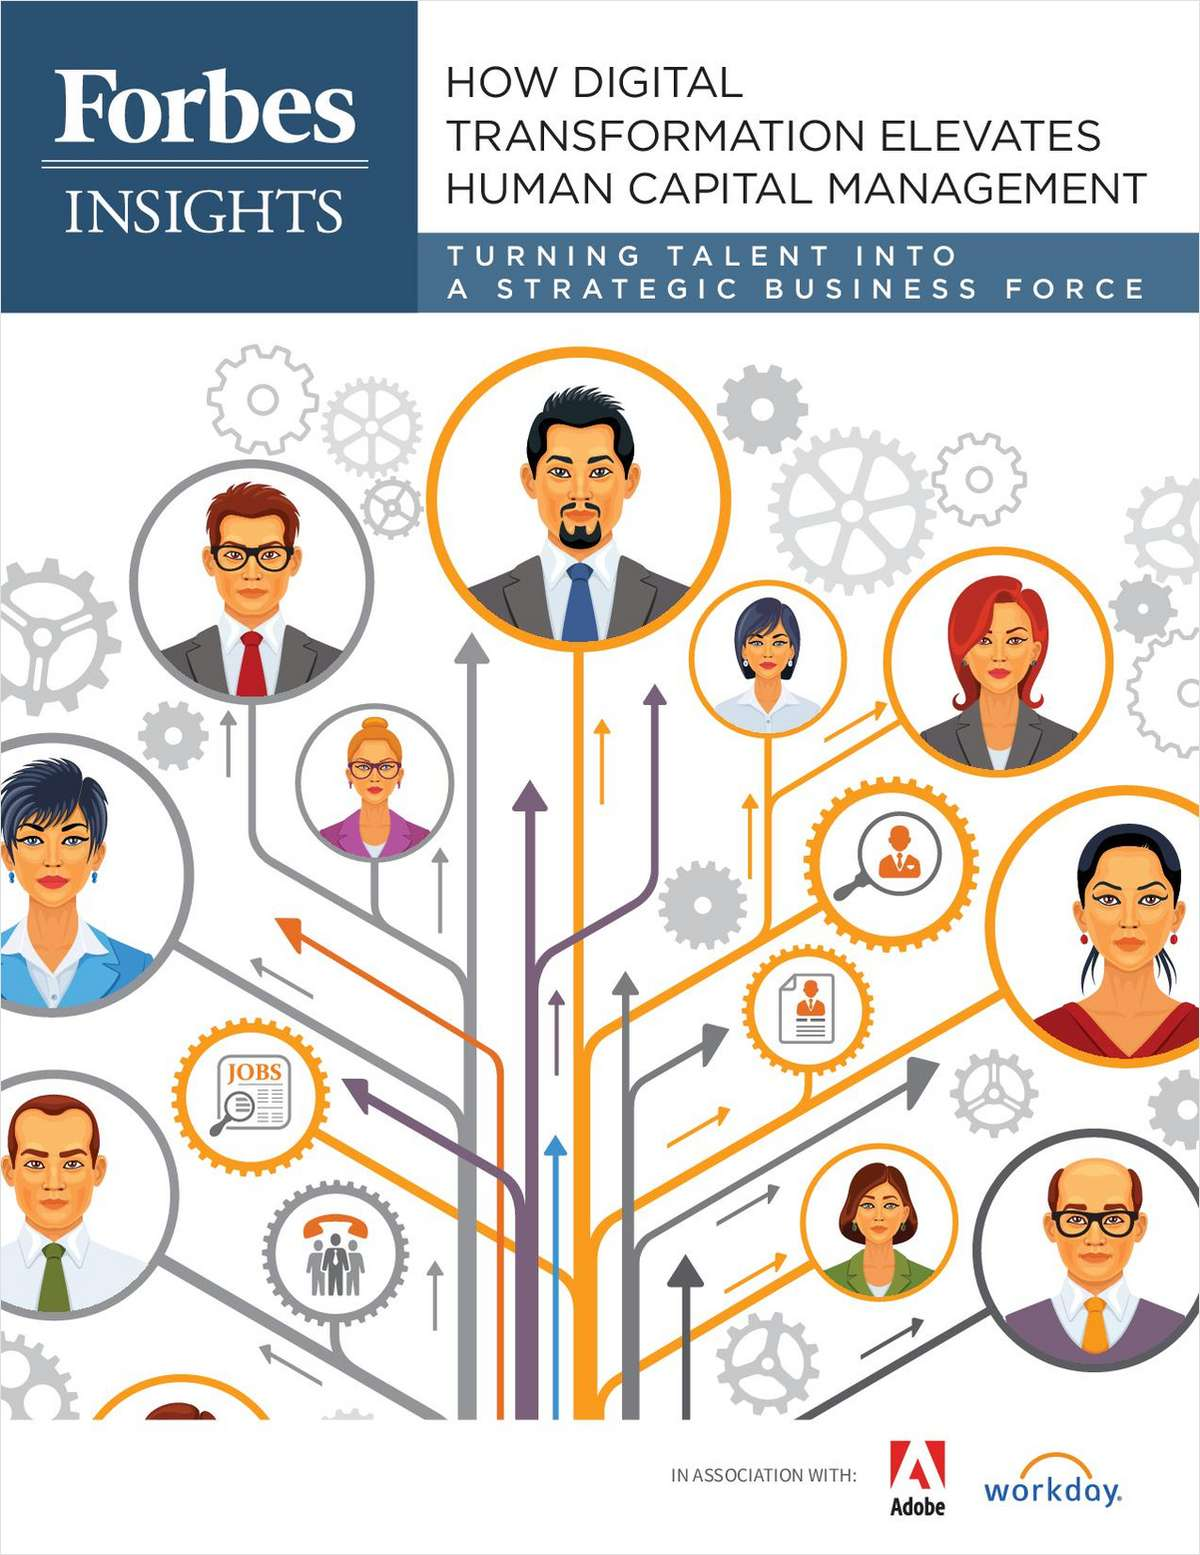 How Digital Transformation Elevates Human Capital Management